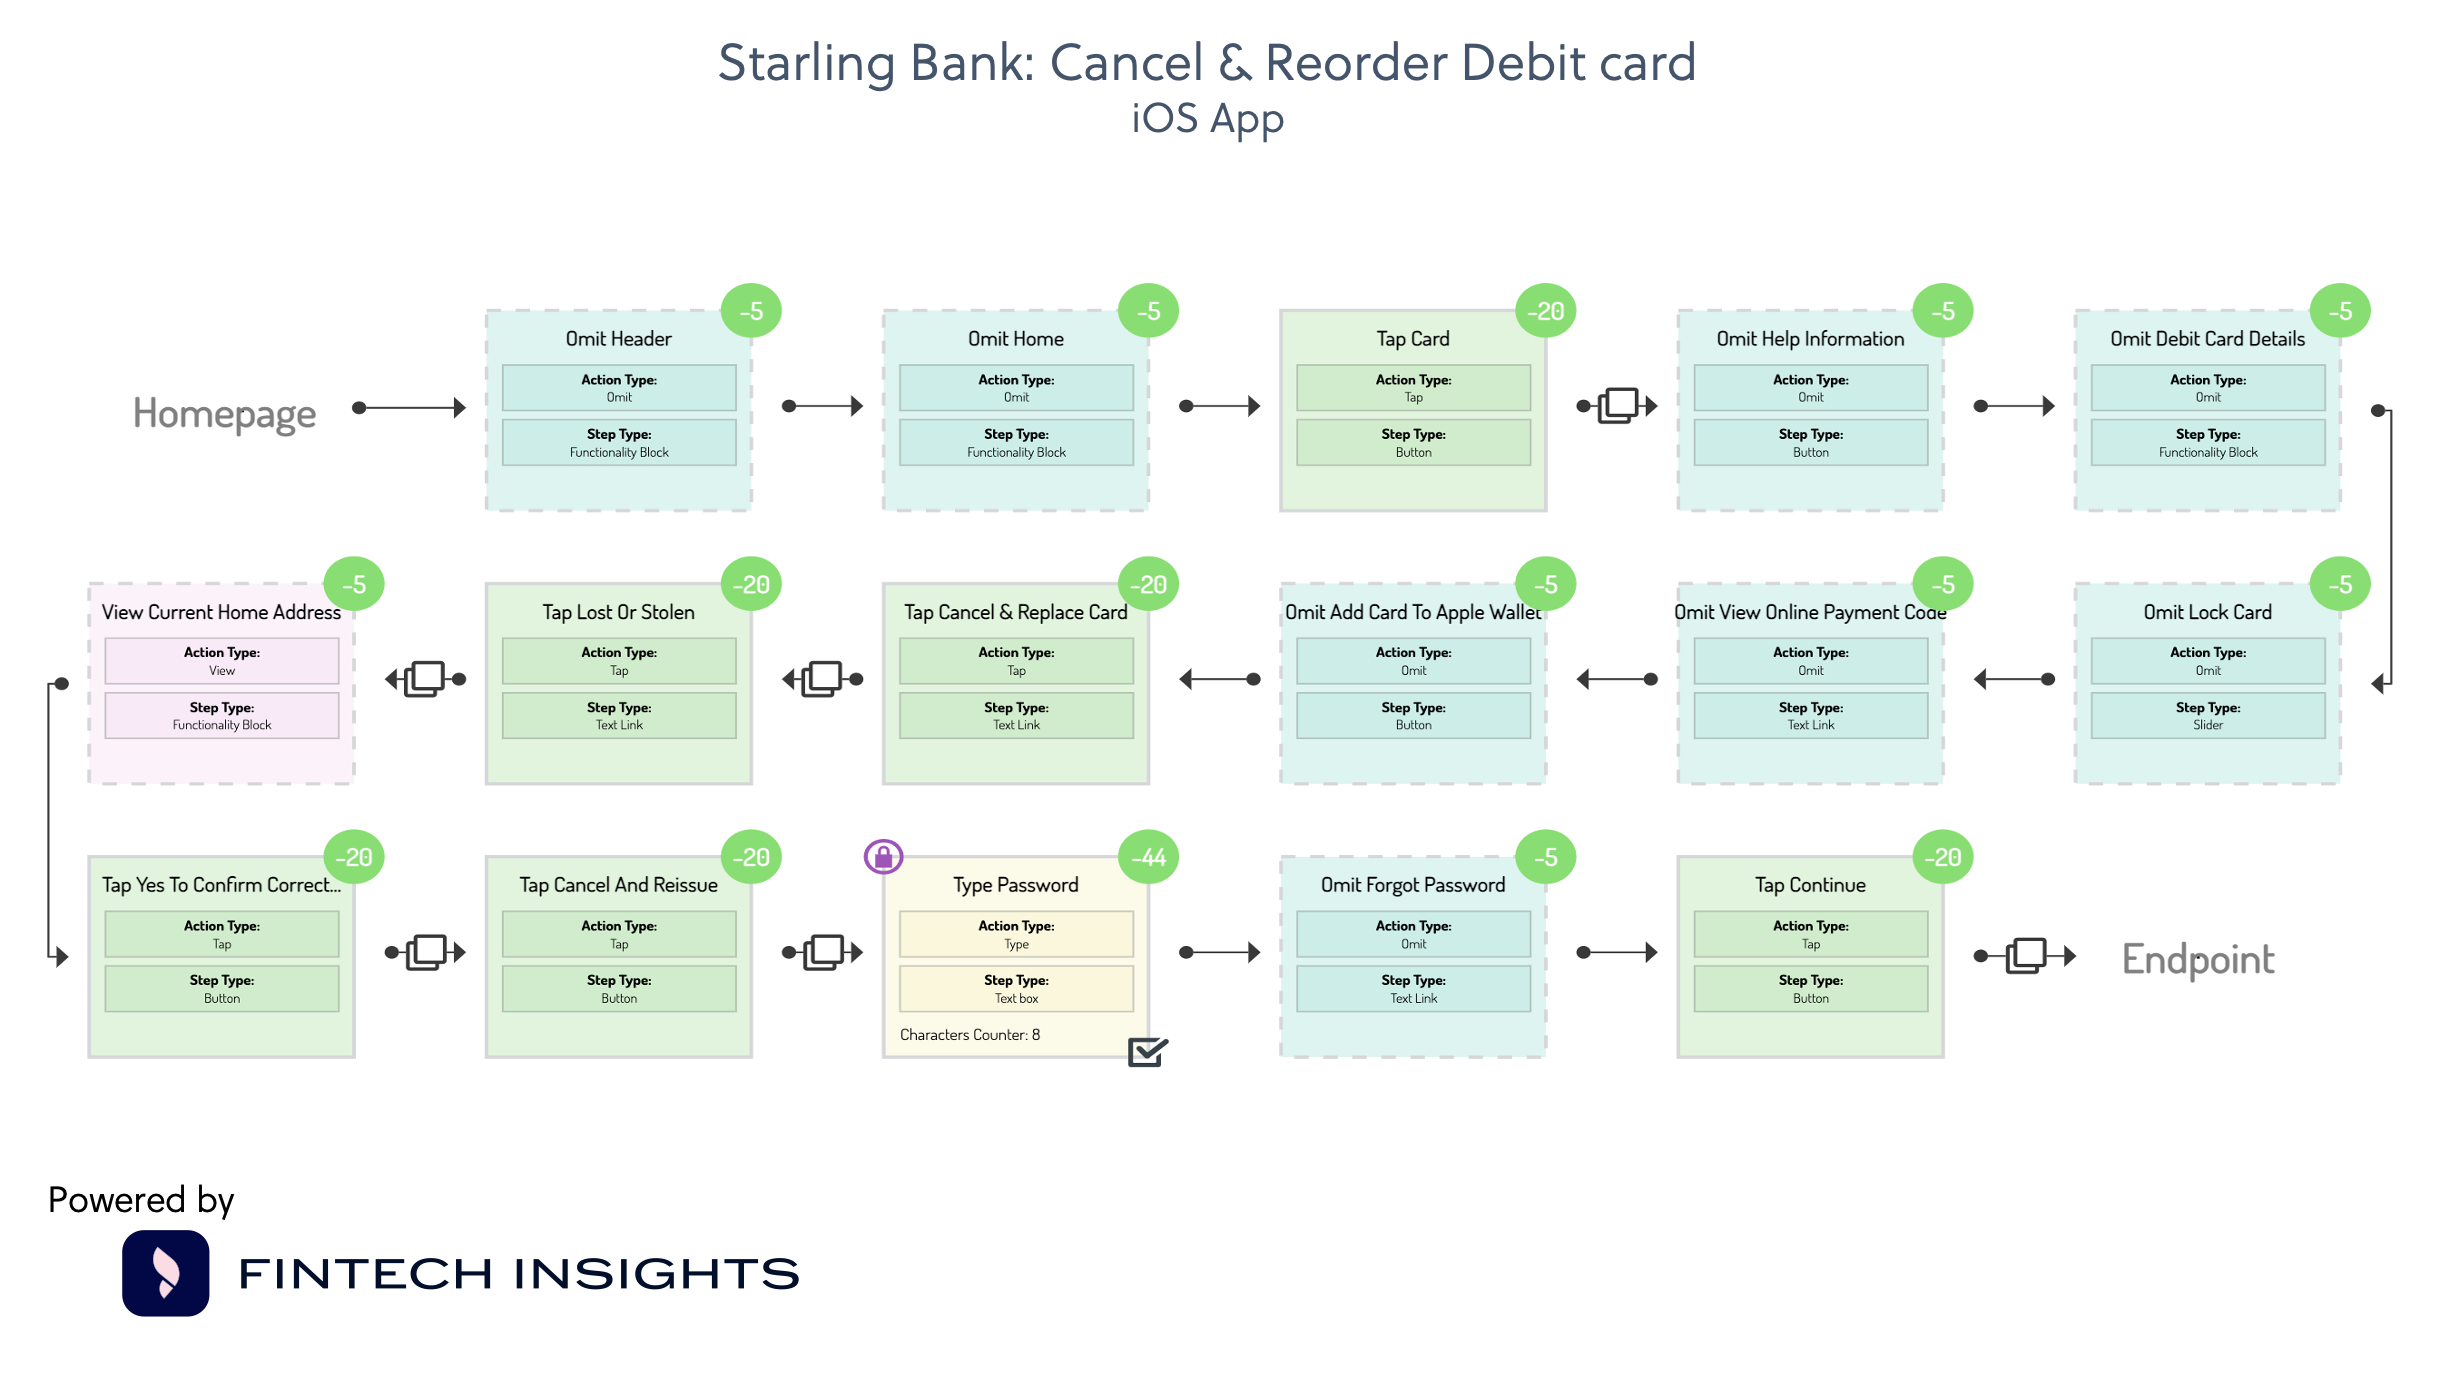 Starling Bank: Cancel and Reorder Debit Card